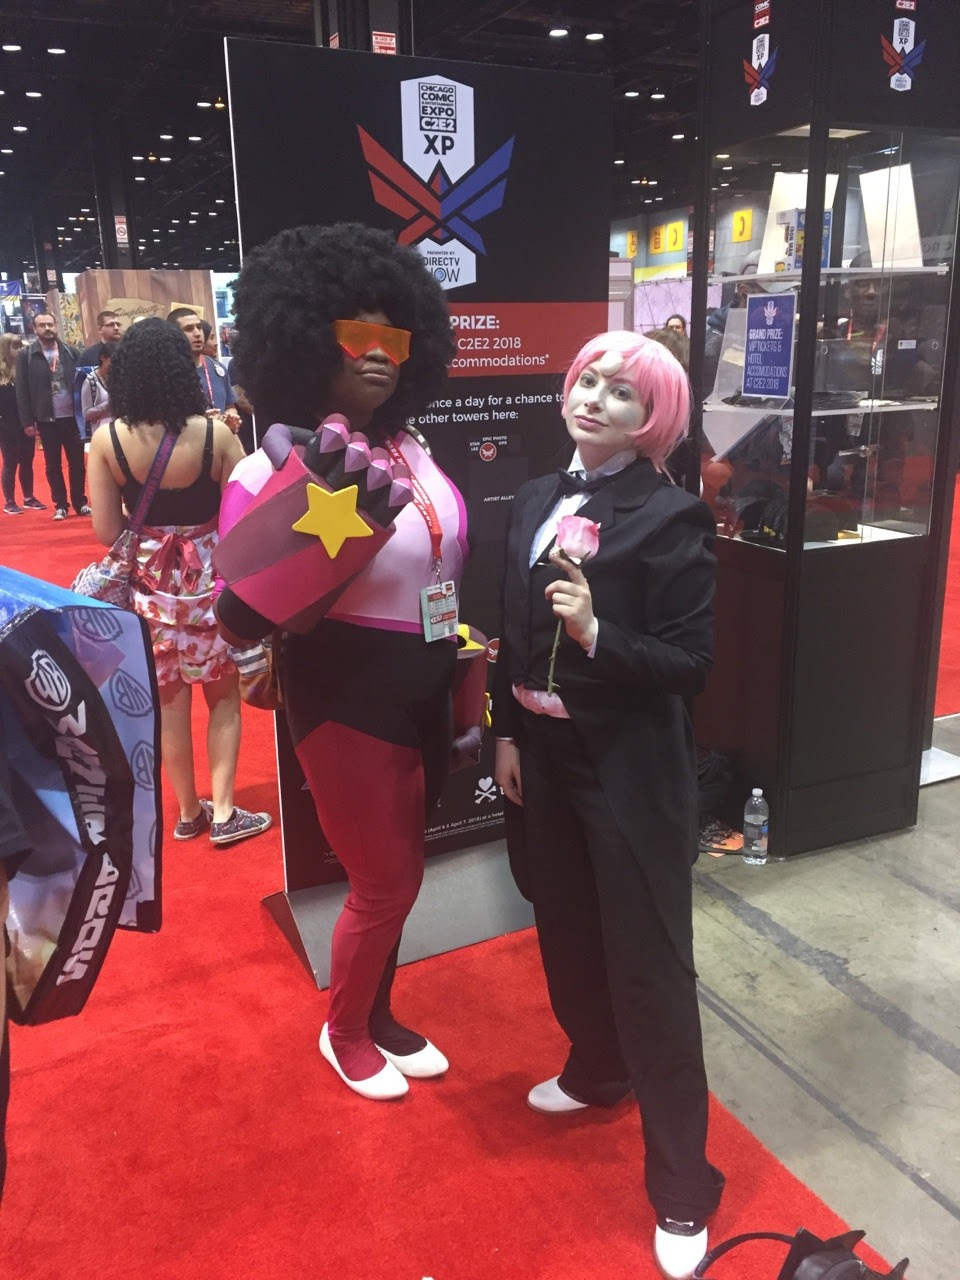 My trip to C2E2!! Gosh everyone was so sweet! I'm surprised there were so few SU cosplayers tho